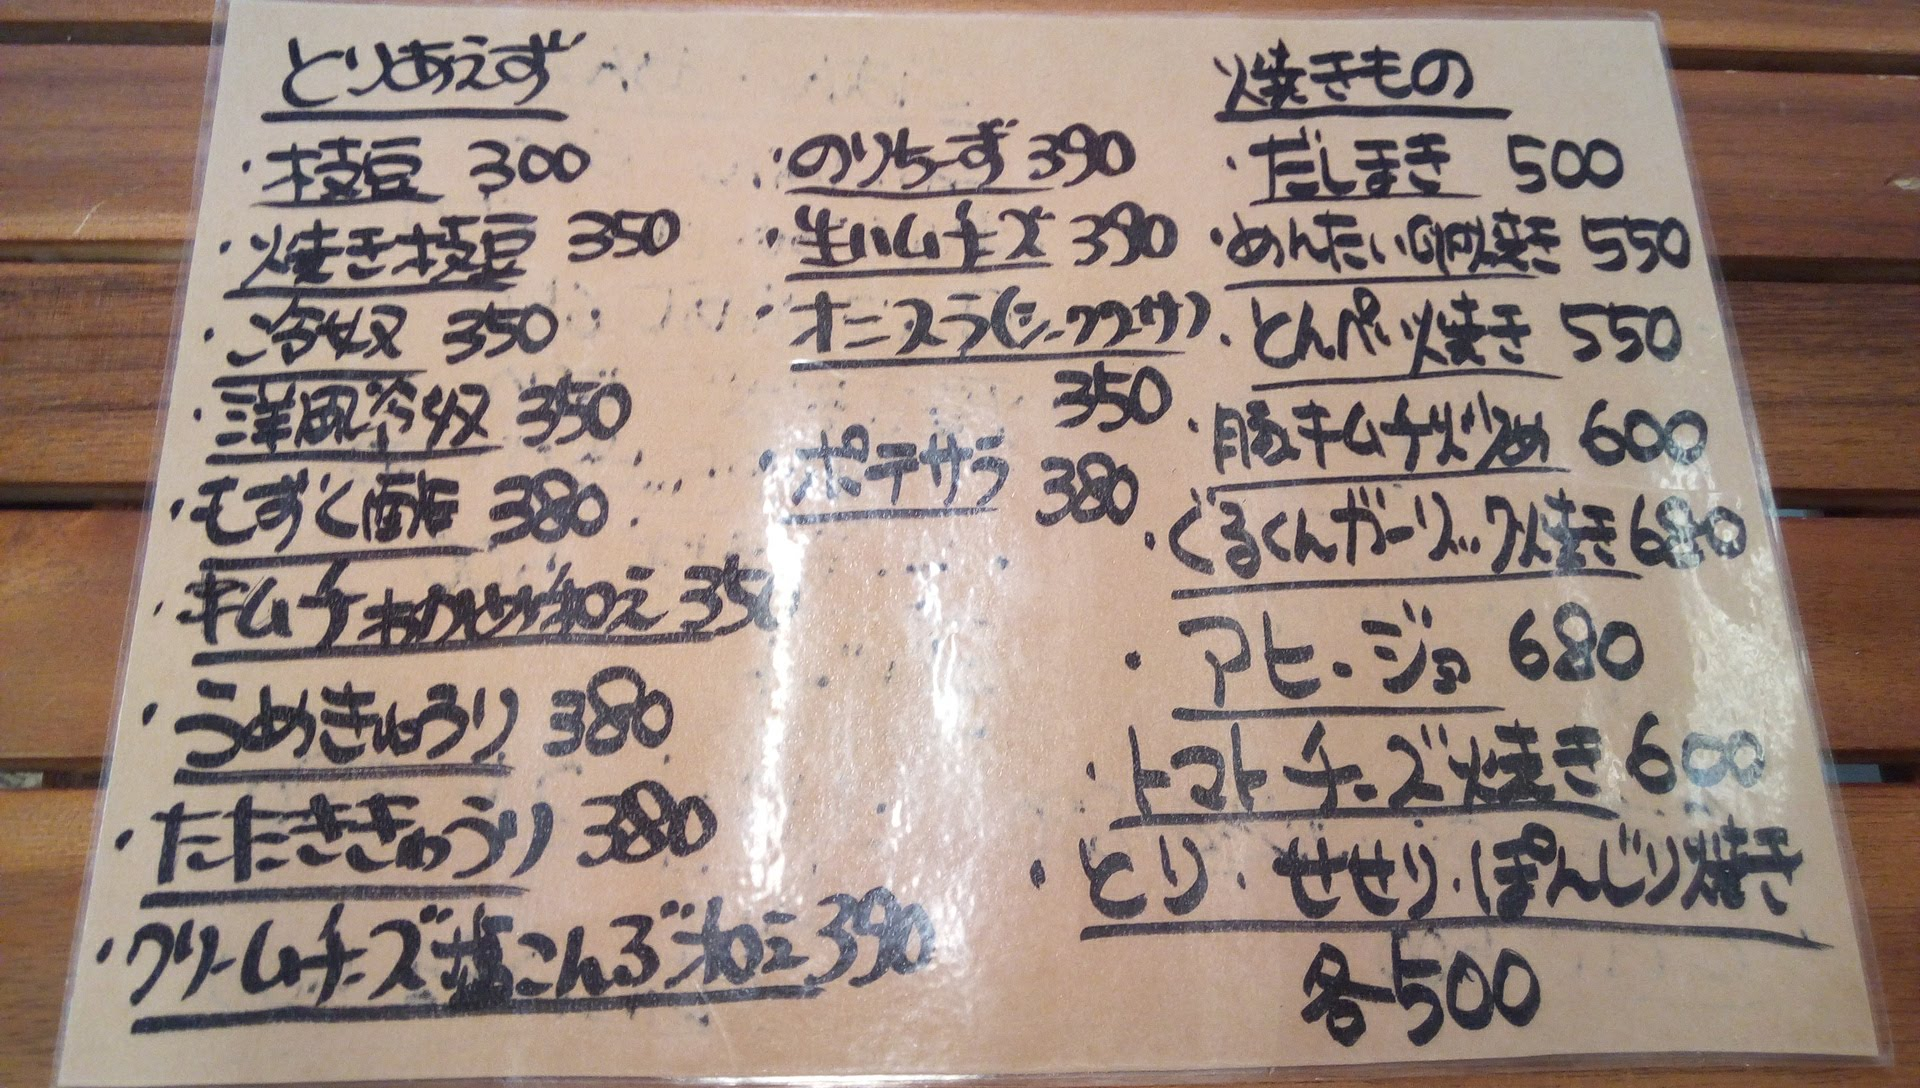 Food menu of En-Dining 1